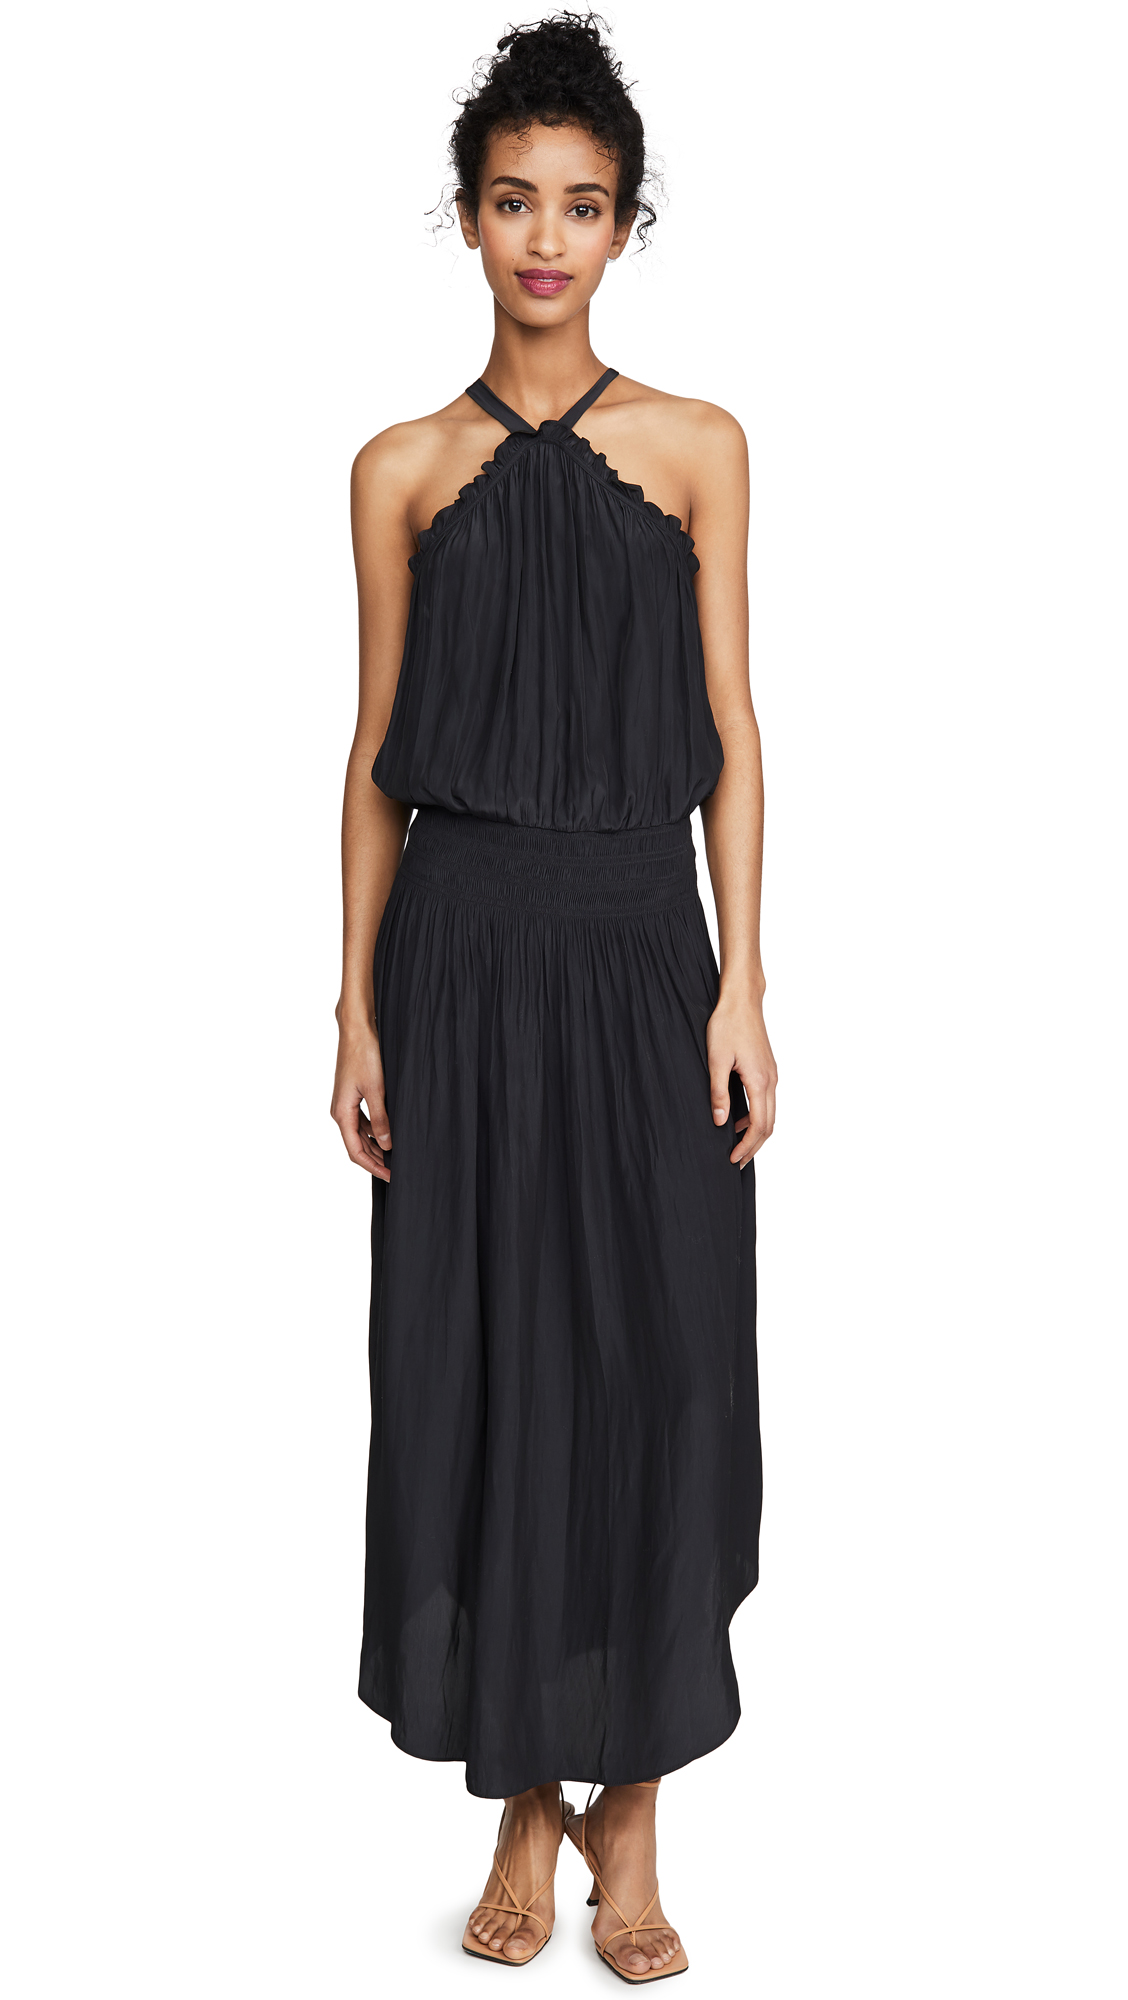 Ramy Brook Chloe Dress - 30% Off Sale